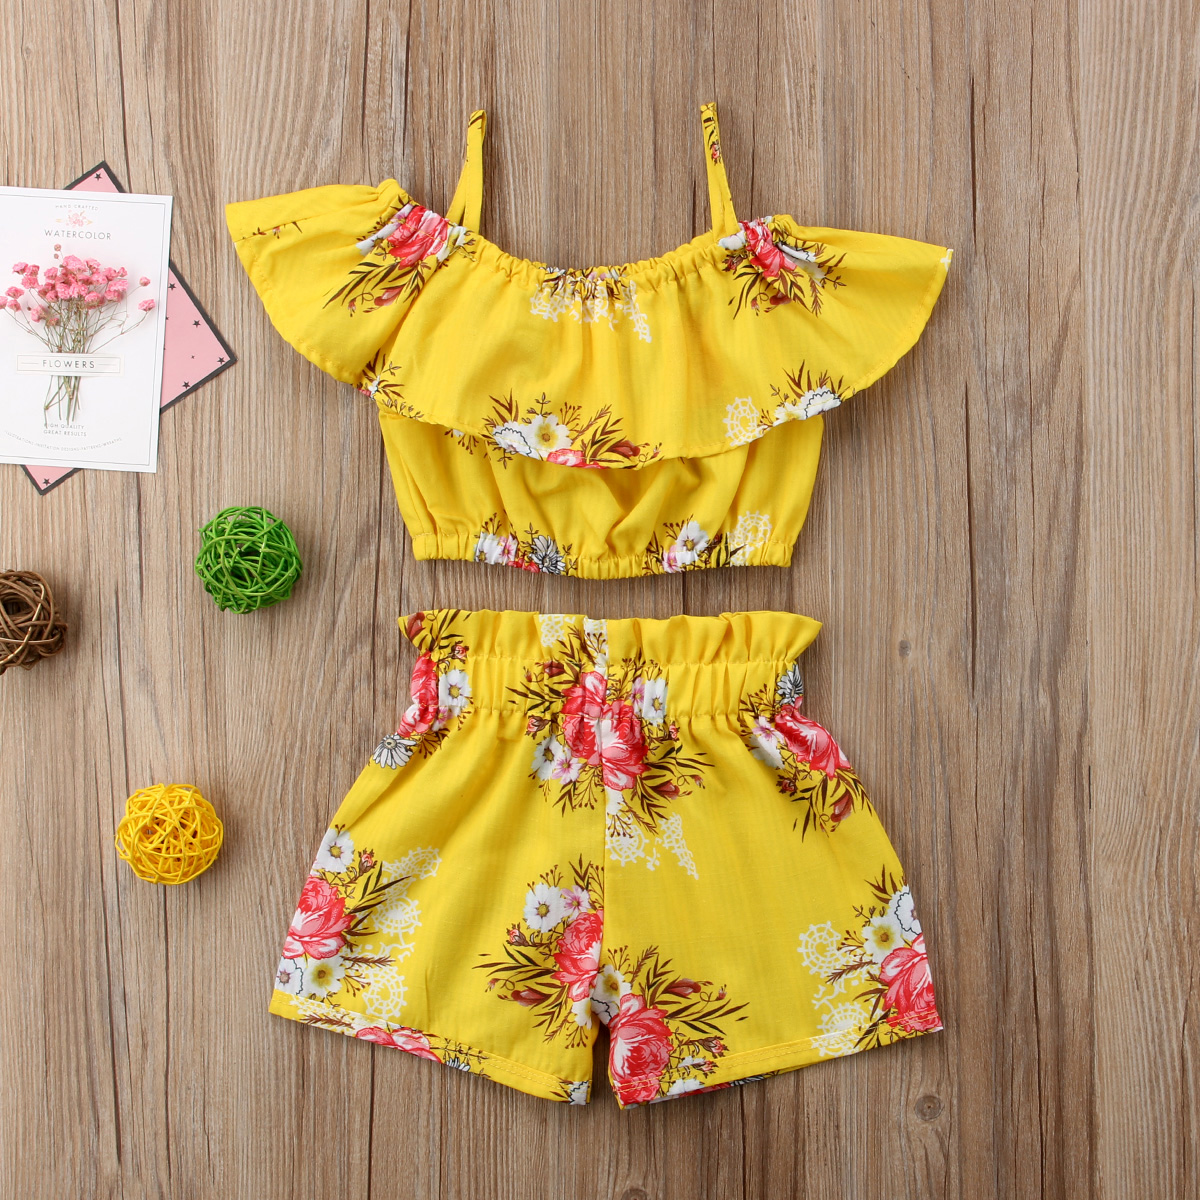 2-6 Year Girls Clothes Set Summer Toddler Kid Baby Girl Ruffles Floral Printed Straps Off Shoulder Tops And Shorts 2Pcs Sets